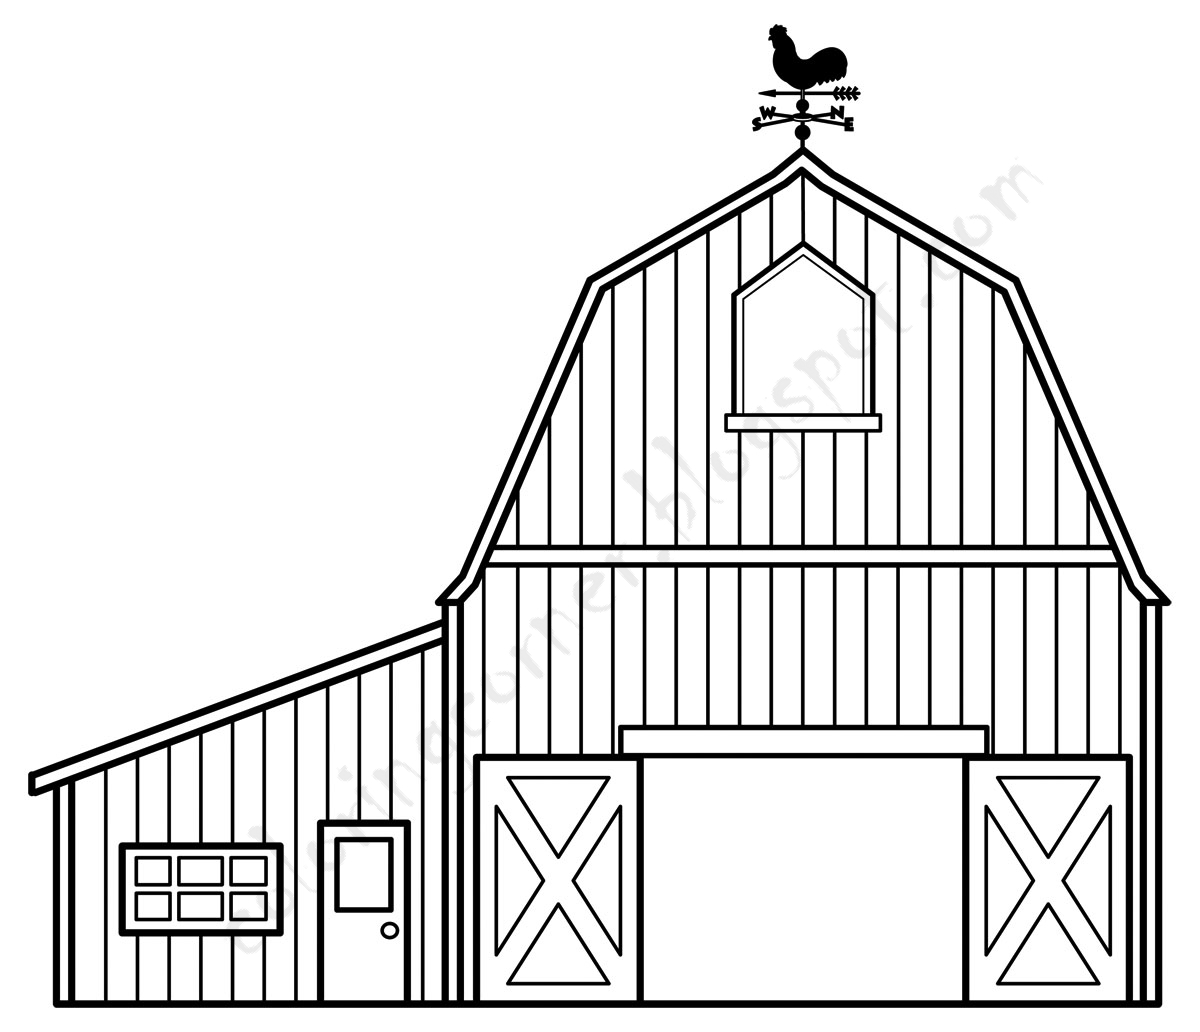 barn outline printable - photo #19